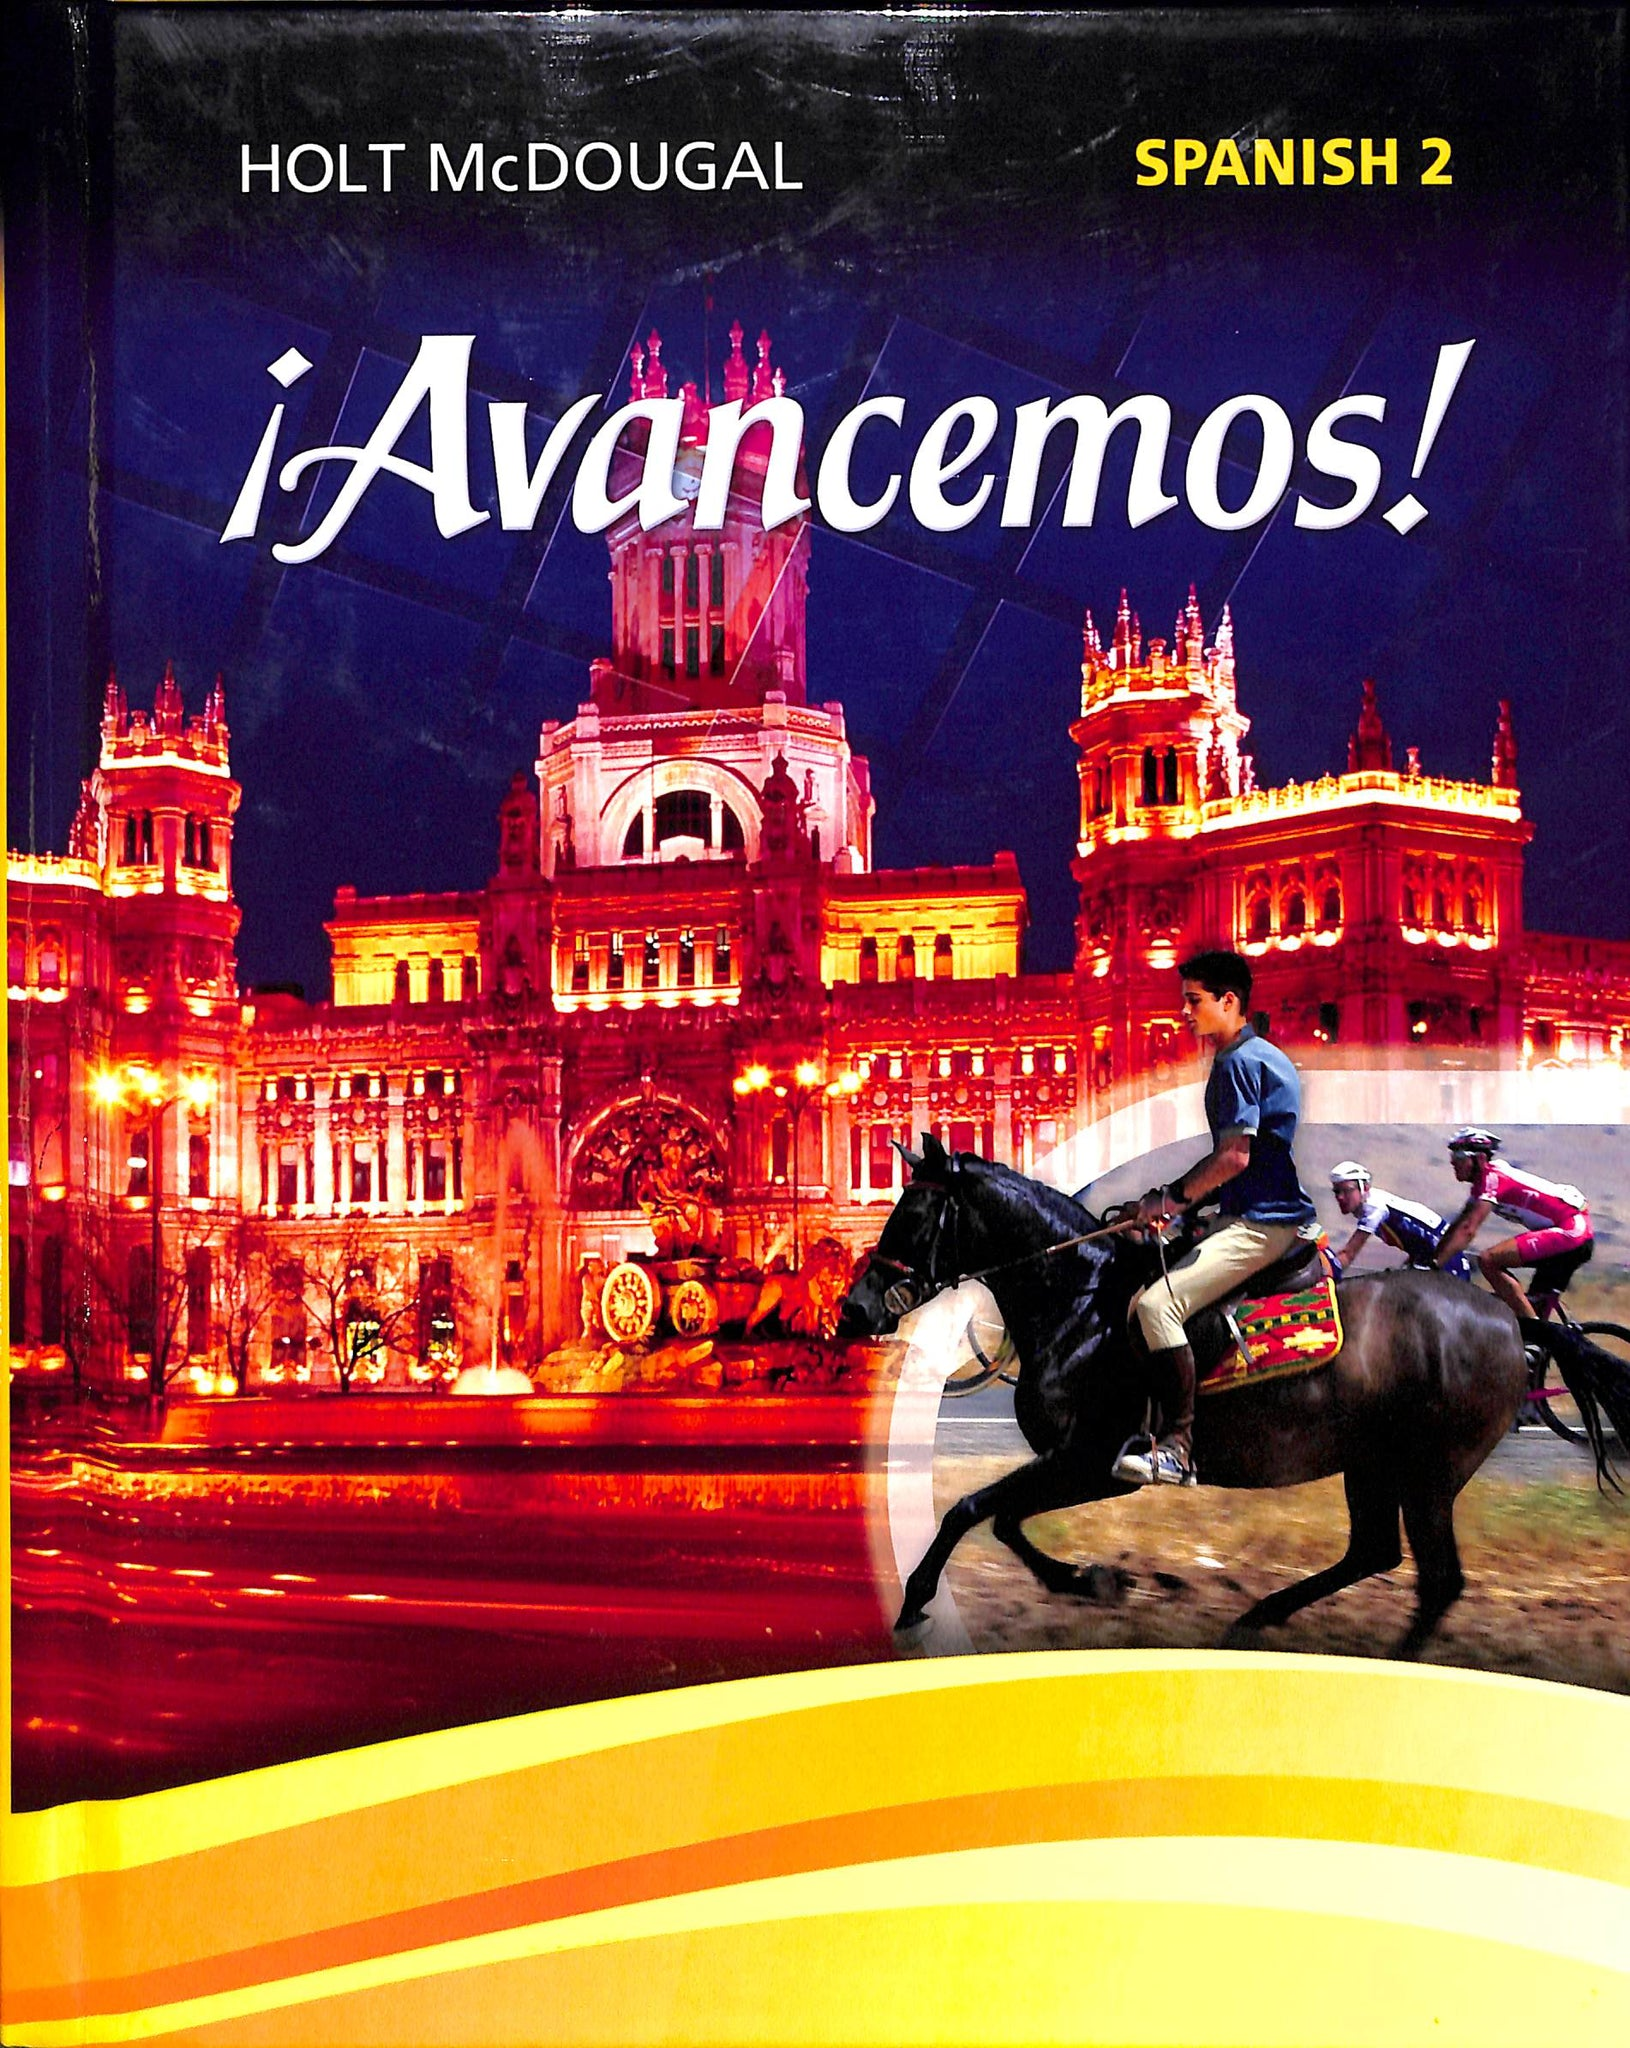 Avancemos Spanish 2 Textbook Used Kolbe Academy Bookstore